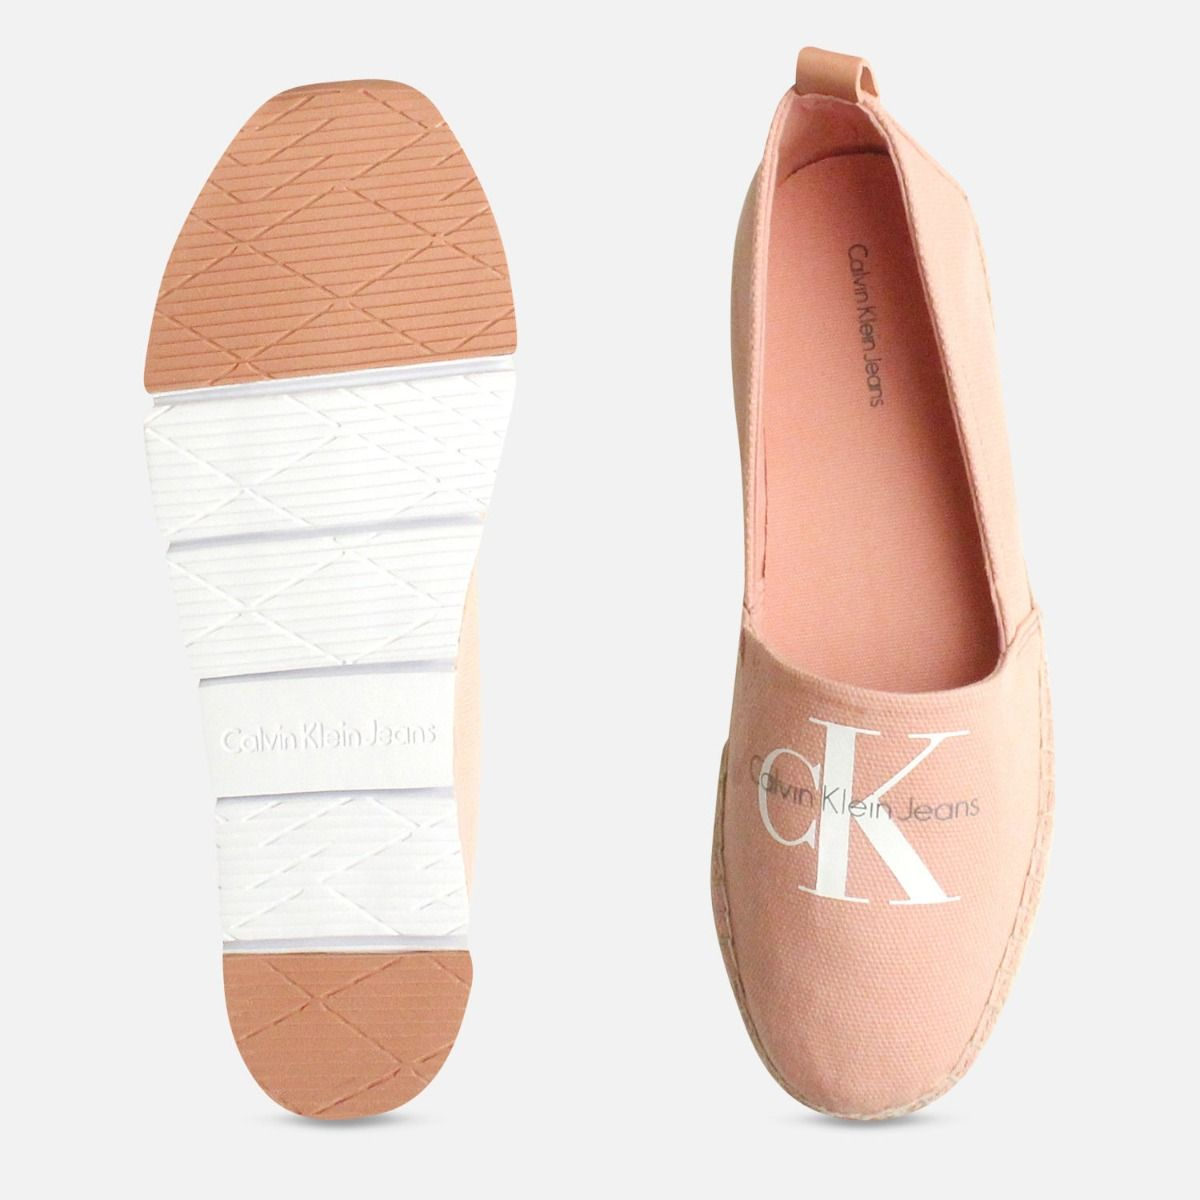 Calvin Klein Ladies Pink Canvas Espadrilles in Dusk Pink